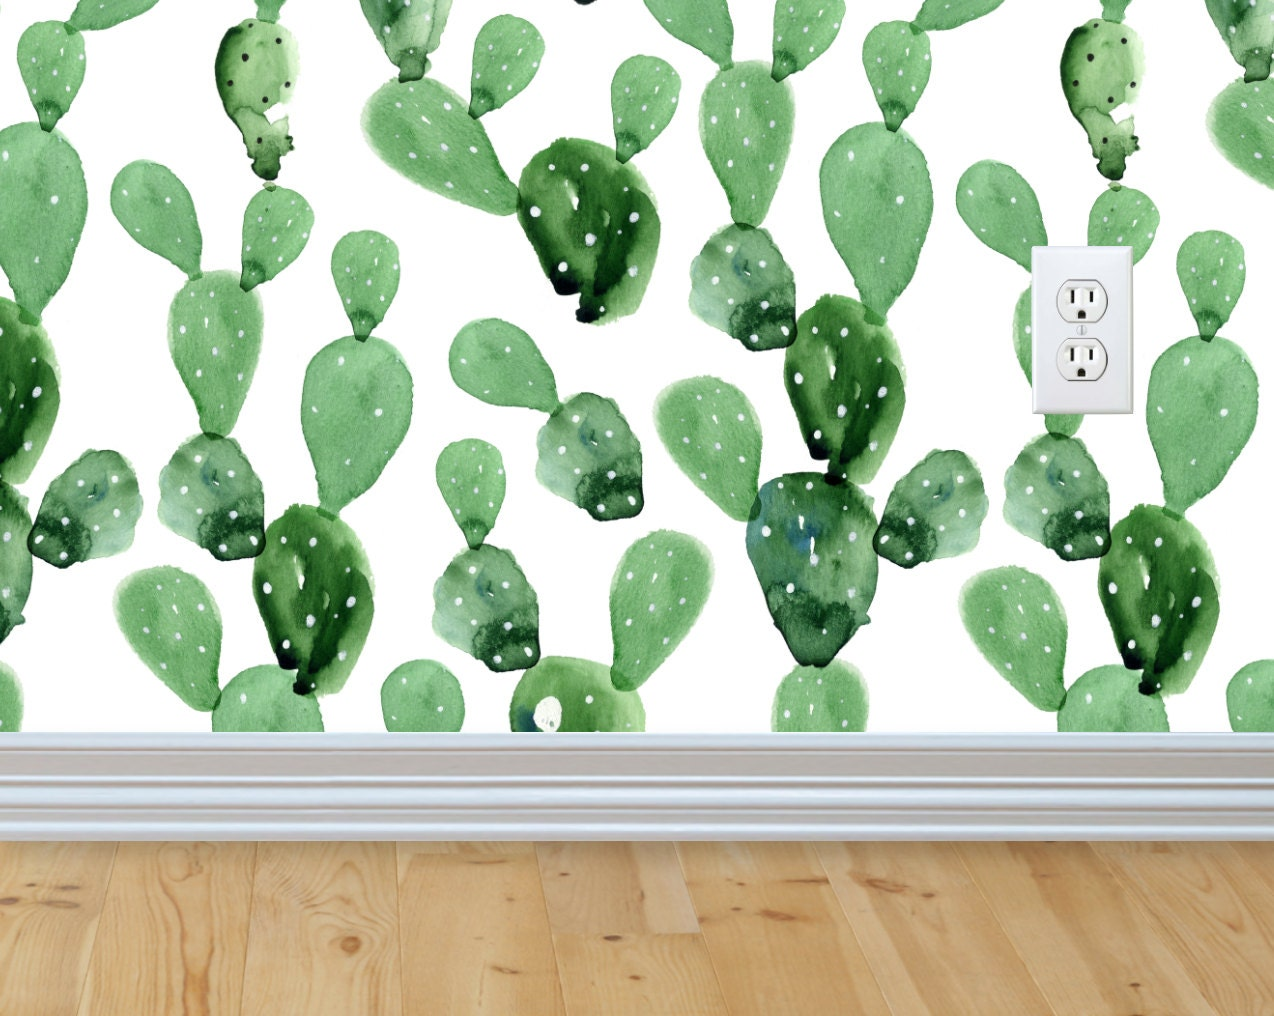 Self adhesive removable wallpaper cactus wallpaper peel and zoom amipublicfo Image collections